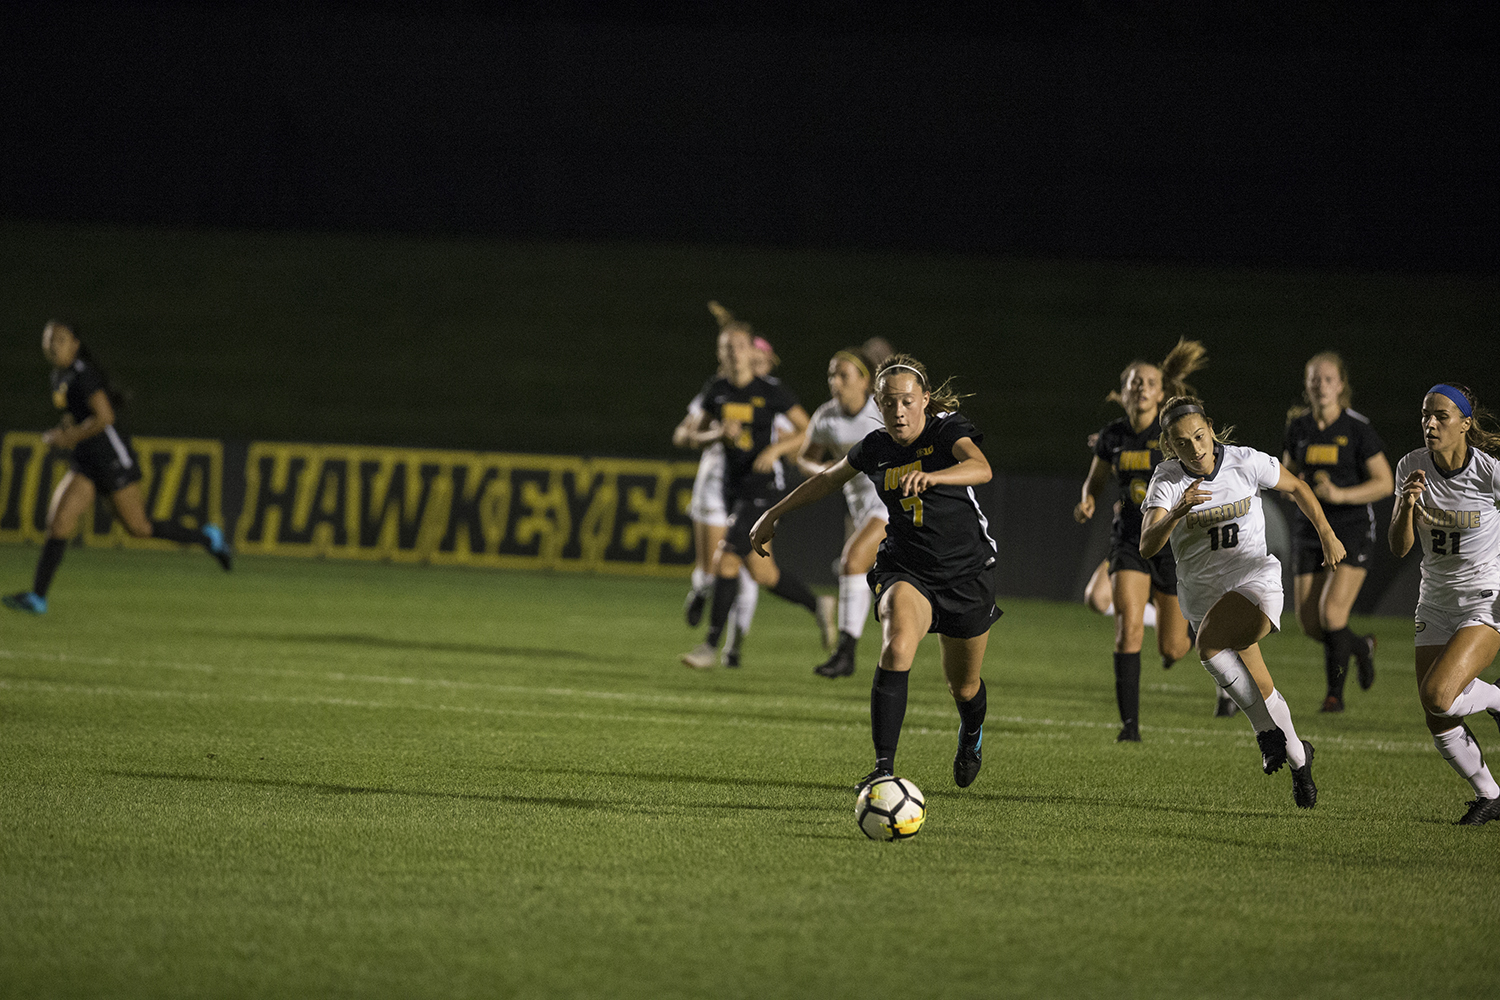 Freshman Skylar Alward dribbles the ball during the Iowa vs. Purdue soccer game on Sept. 20, 2018 at the Iowa Soccer Complex in Iowa City. Iowa tied Purdue 1-1 in overtime.